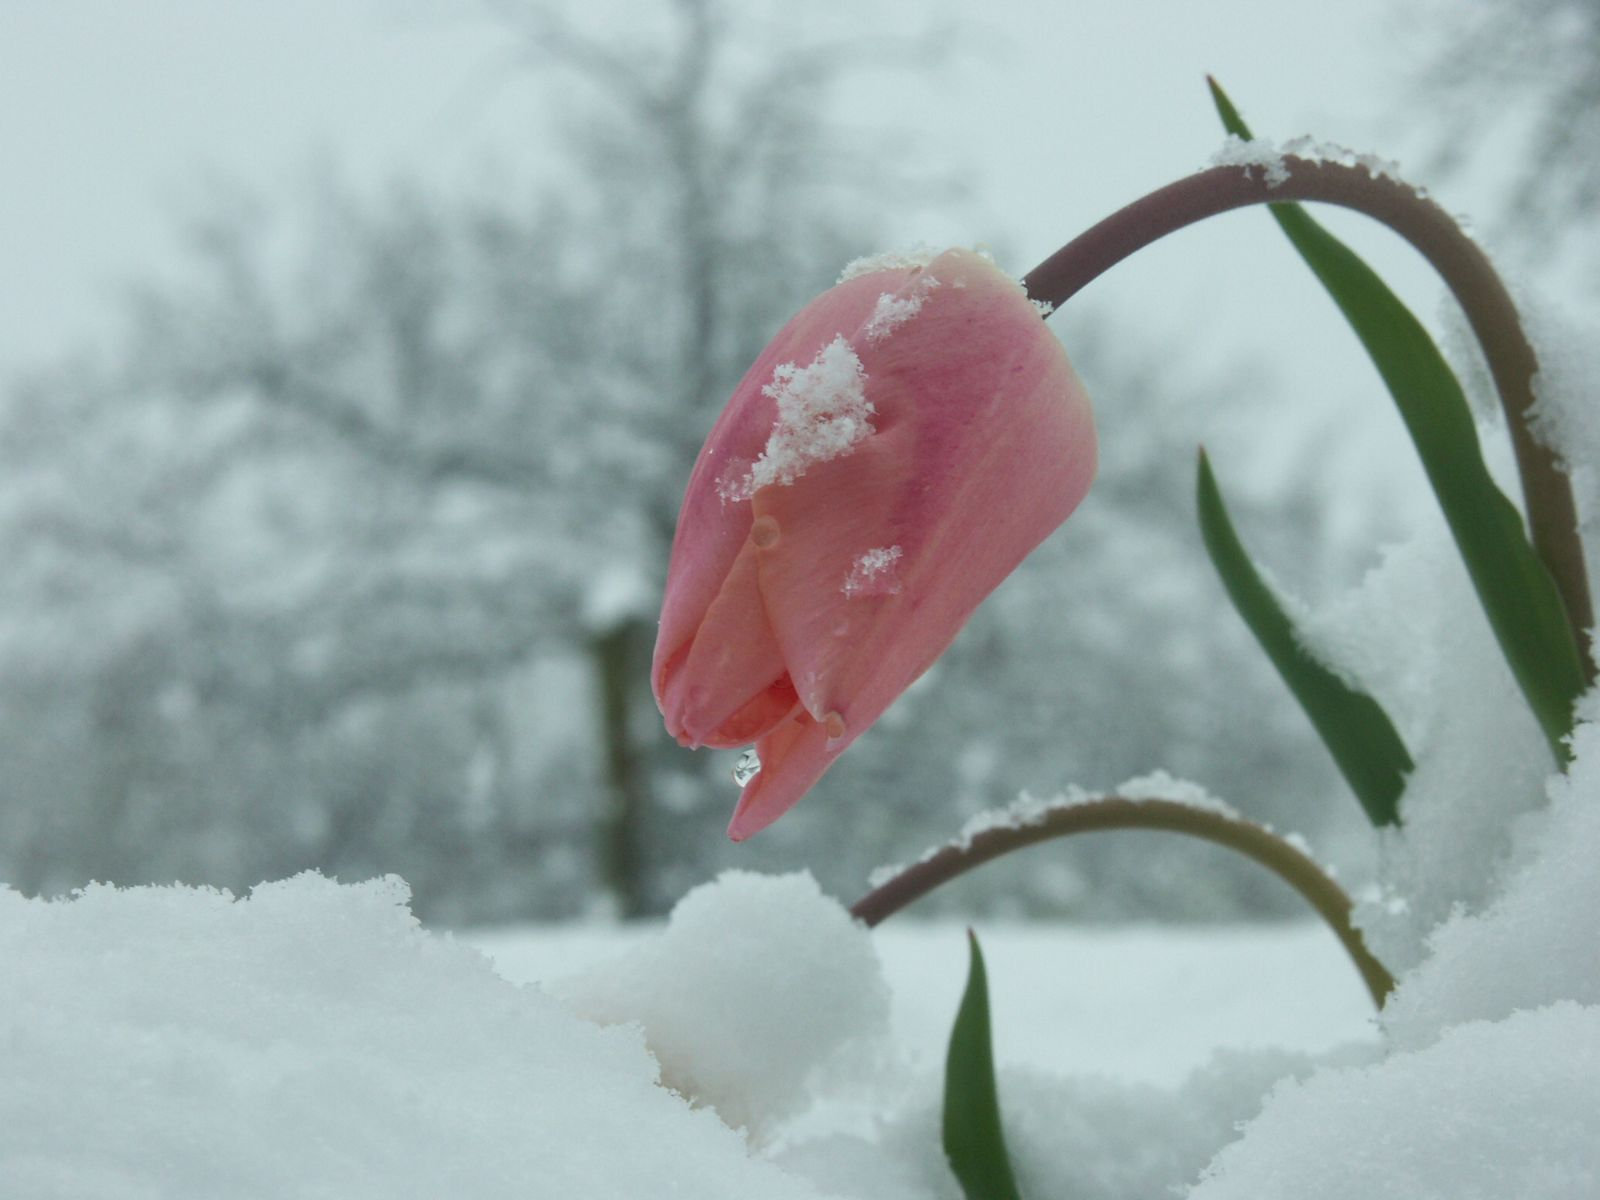 Pictures of Snow Flowers   Home Of HD Hot And Beautiful Wallpapers     Pictures of Snow Flowers   Home Of HD Hot And Beautiful Wallpapers